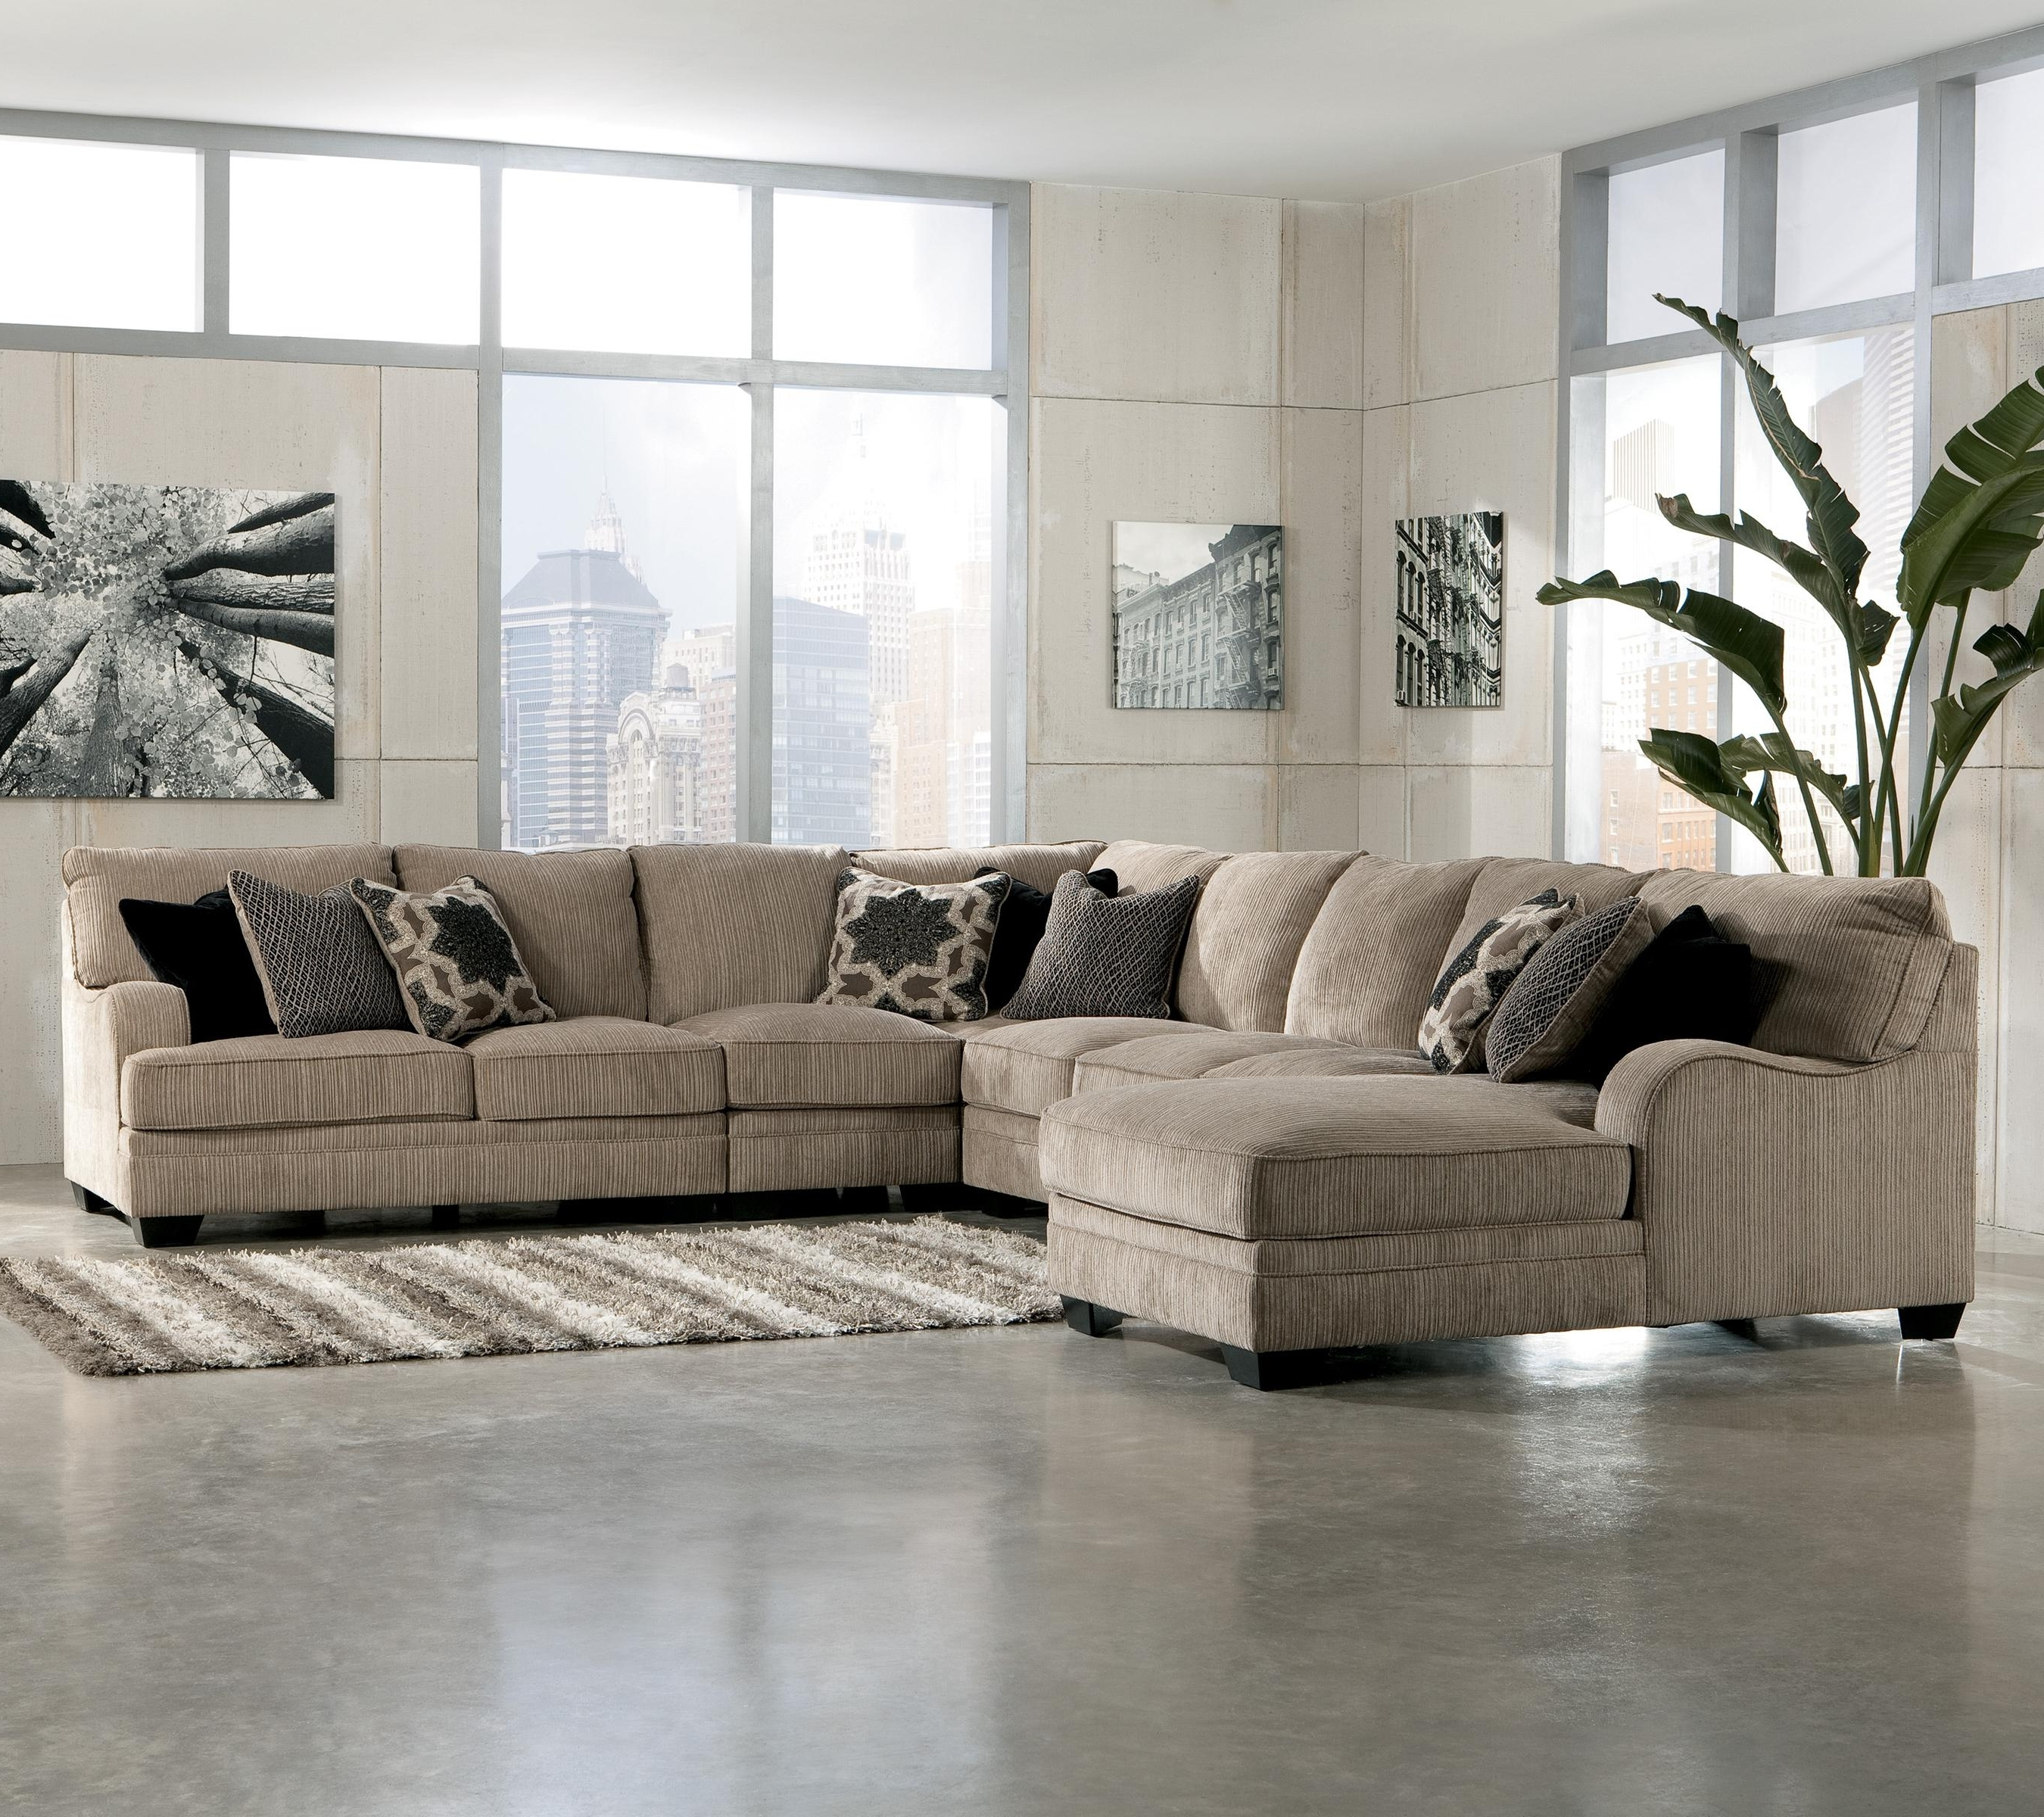 Furniture: Luxury Ashley Furniture Savannah Ga Ashley Furniture With Regard To Most Up To Date Sectional Sofas In Savannah Ga (View 5 of 20)